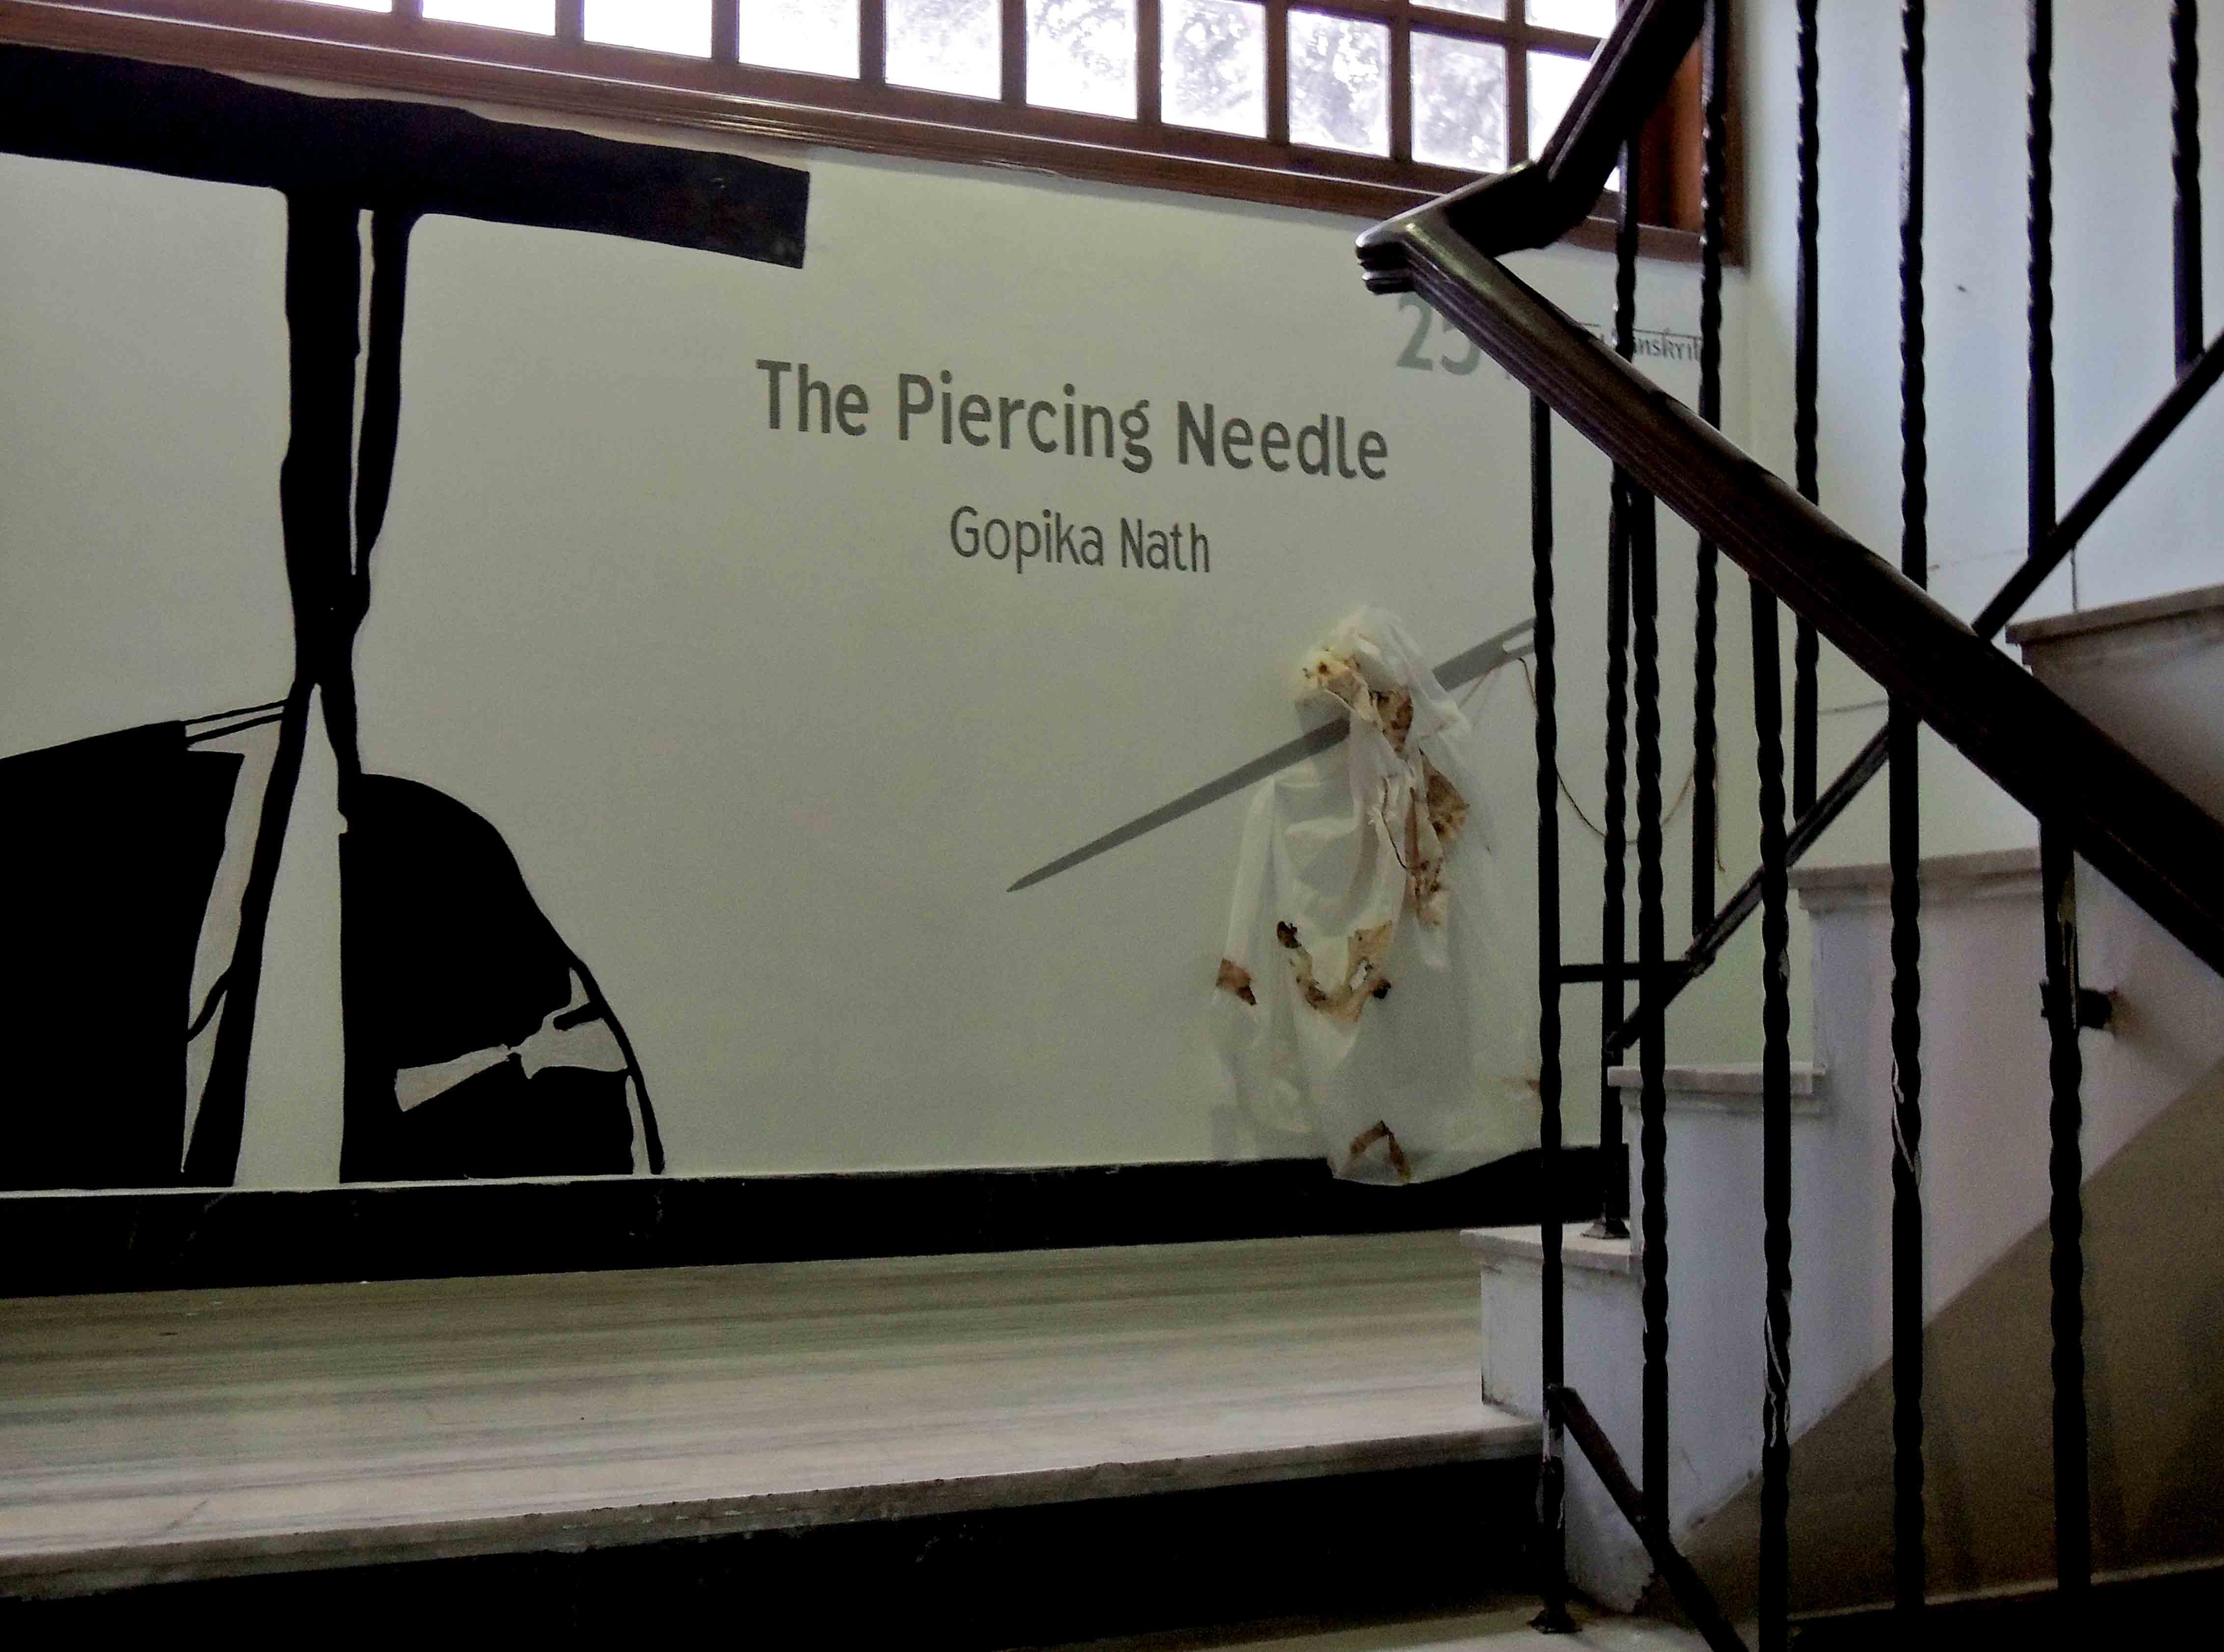 Image 3 : Display image of The Piercing Needle, In View: Display on staircase leading up to gallery, Photo credit: gopika nath